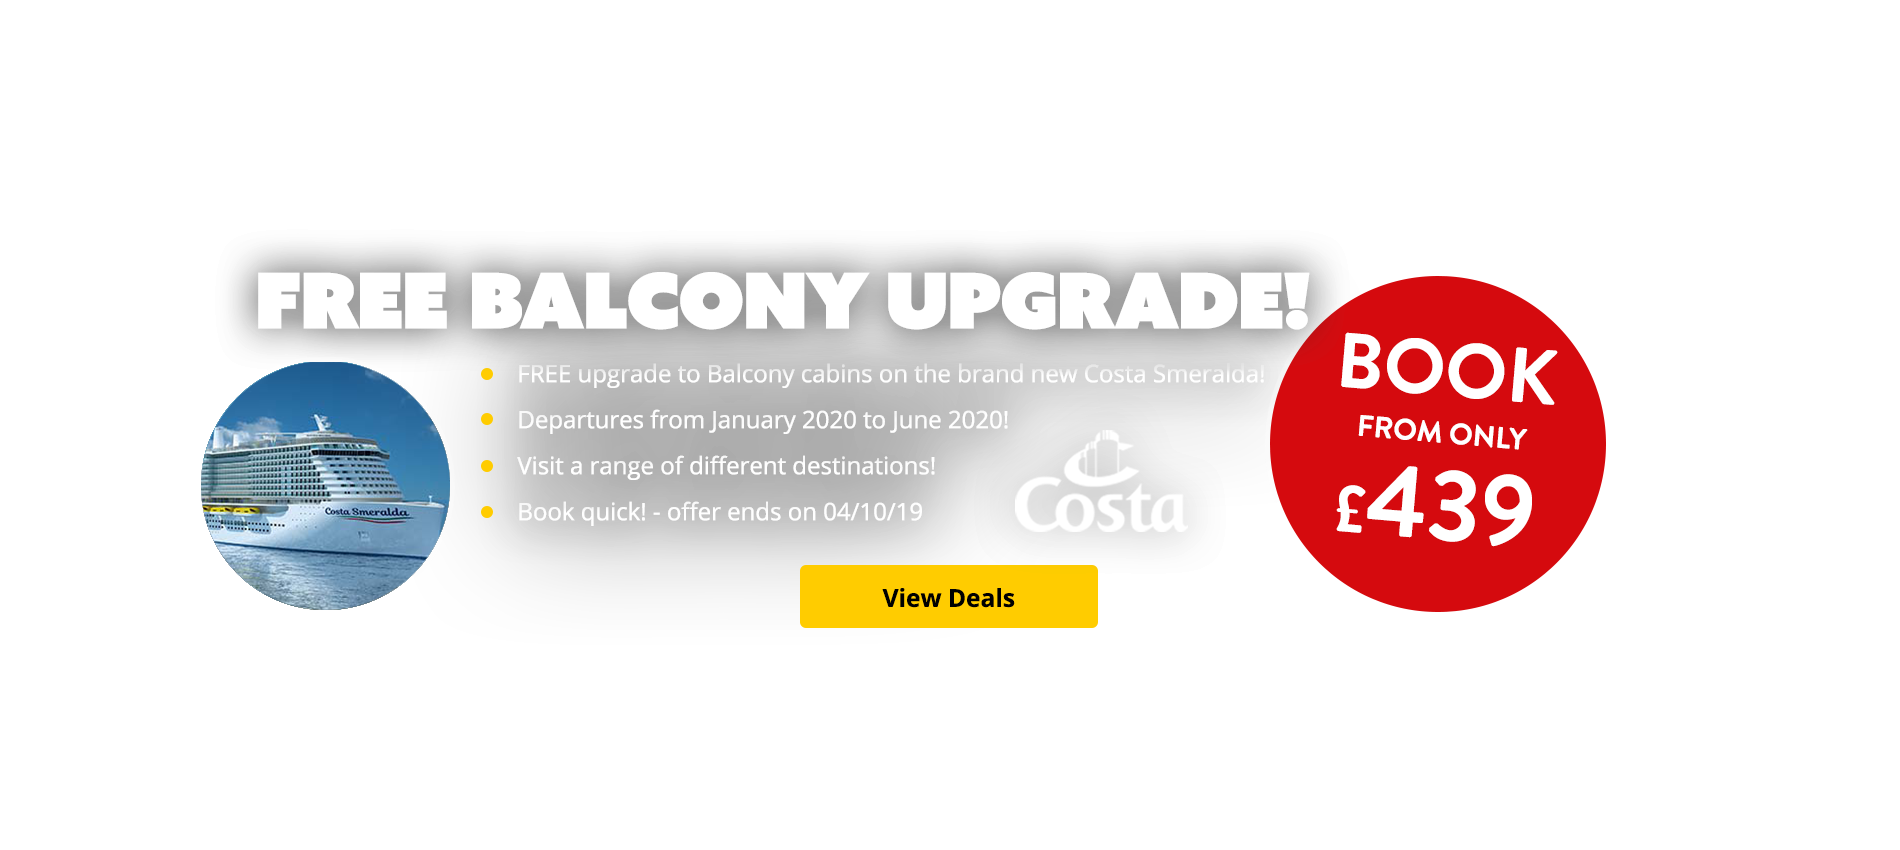 FREE upgrade to Balcony cabins on the brand new Costa Smeralda! Departures from January 2020 to June 2020! Visit a range of different destinations! Book quick! - offer ends on 04/10/19